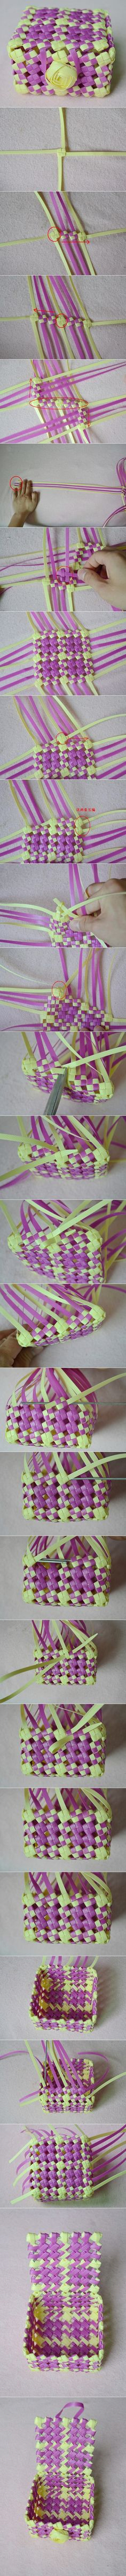 packing belt weaved basket tutorial